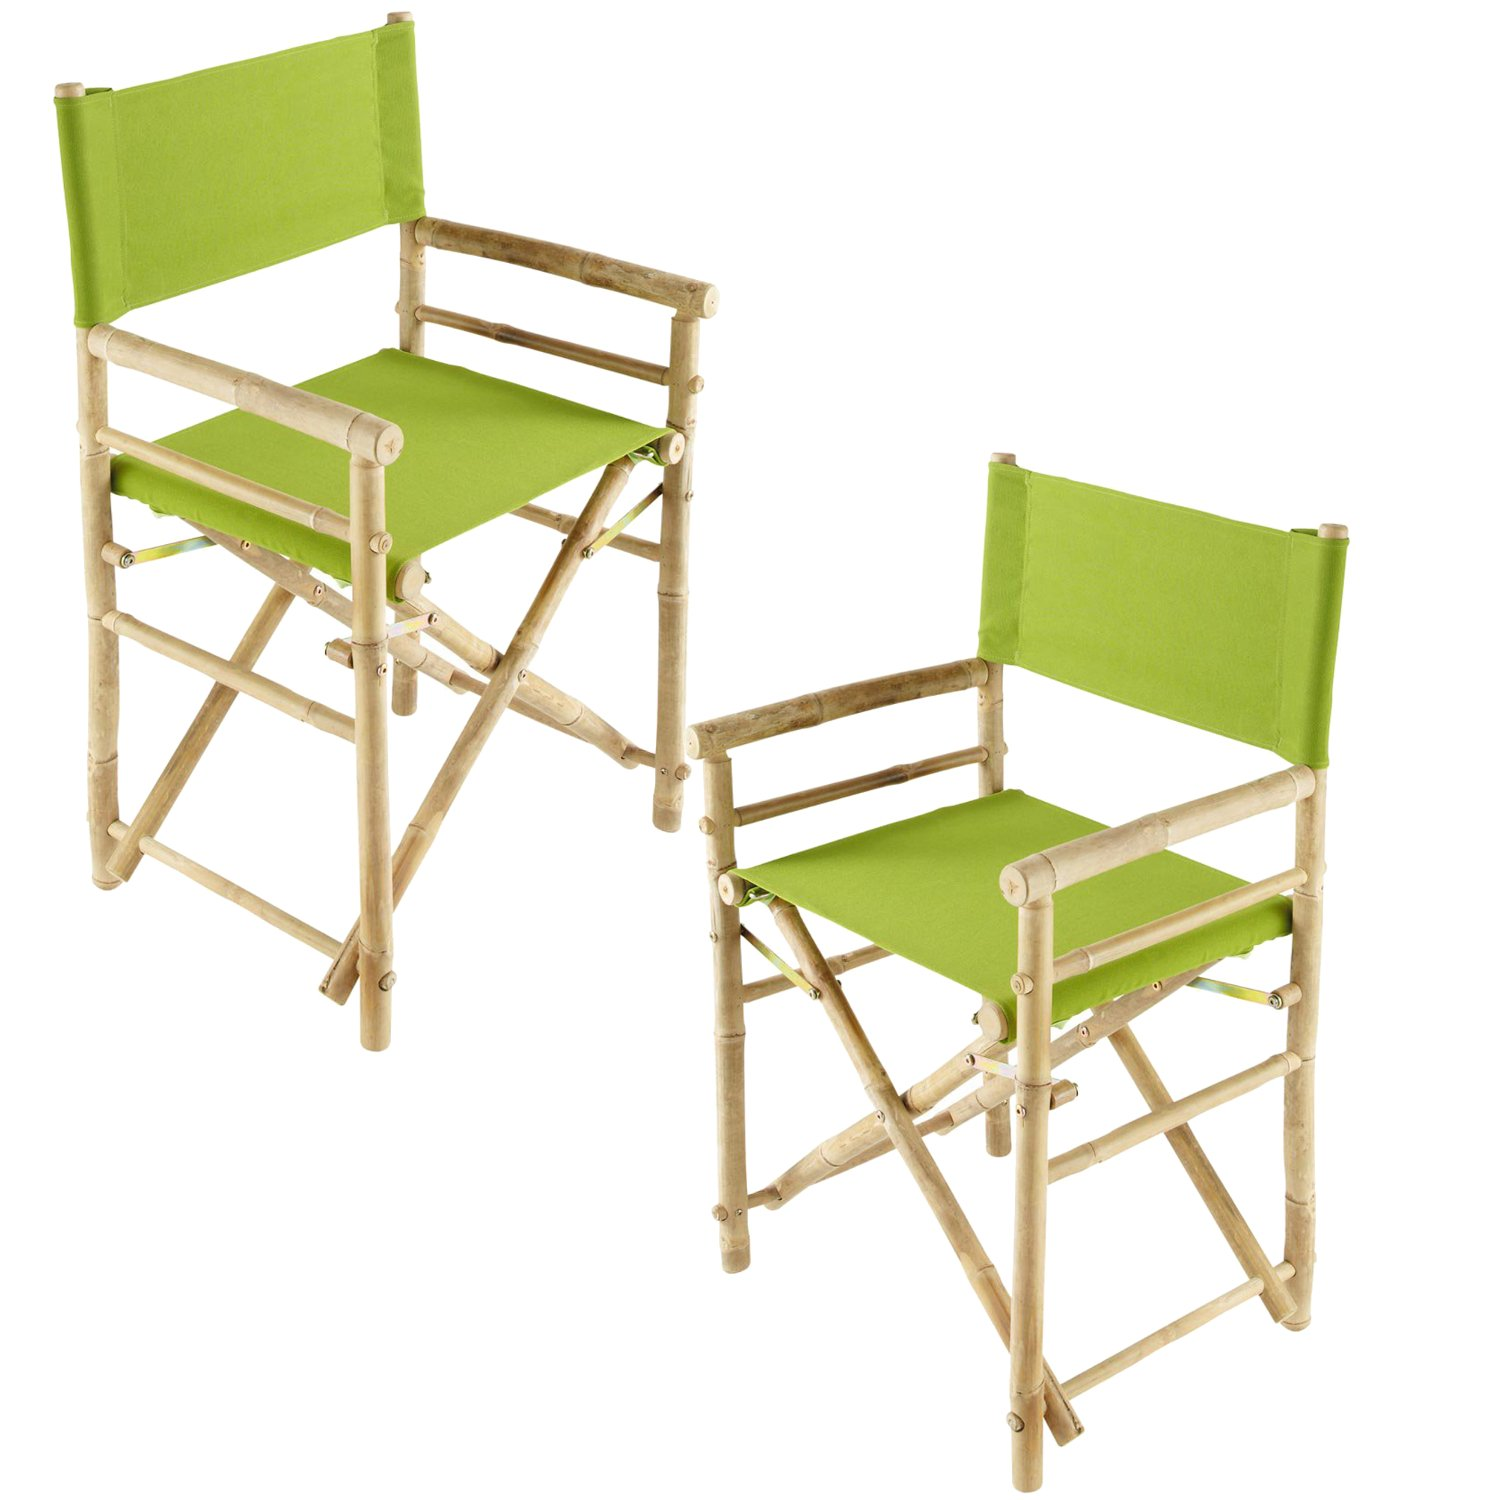 Zew Indoor Green Canvas Folding Director Chair Bamboo Portable Camping Outdoor Set of 2, 35'' H x 18'' W x 23'' D by Zew